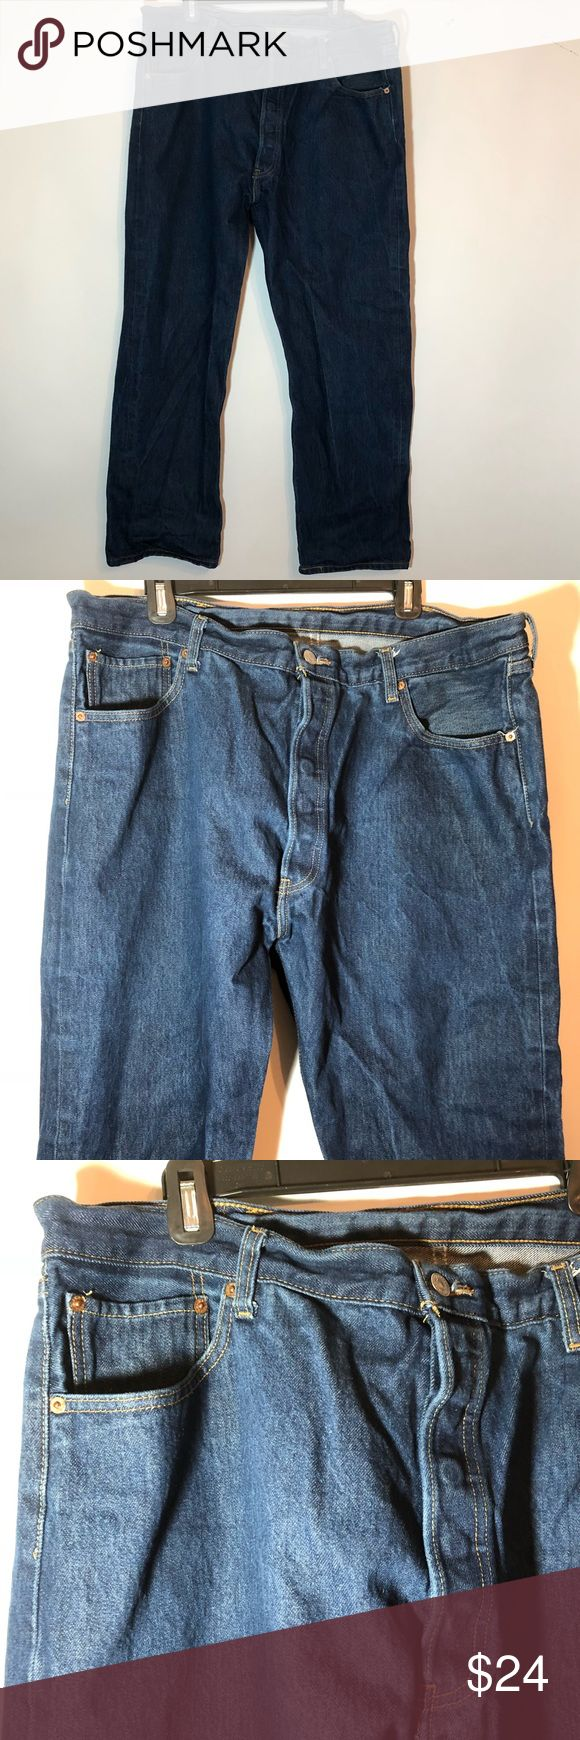 Levi's 501 Button Fly Jeans Men's 42X32 Denim Blue Men's Levi's 501 Jeans Button Fly Jeans are in excellent (newish) condition No signs of wear No stains tears or holes Size 42X32 Smoke free pet free home Levi's Jeans Straight